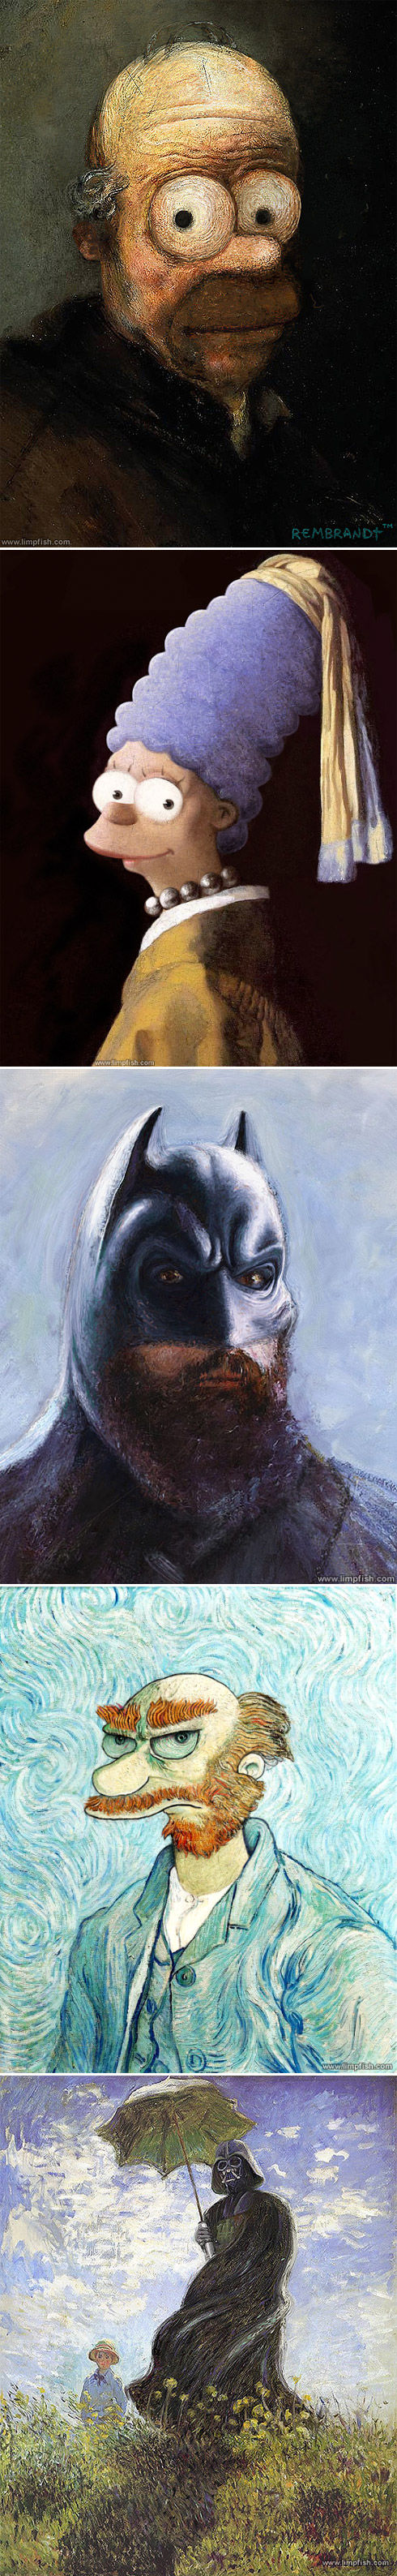 Popculture icons painted in the style of classic art